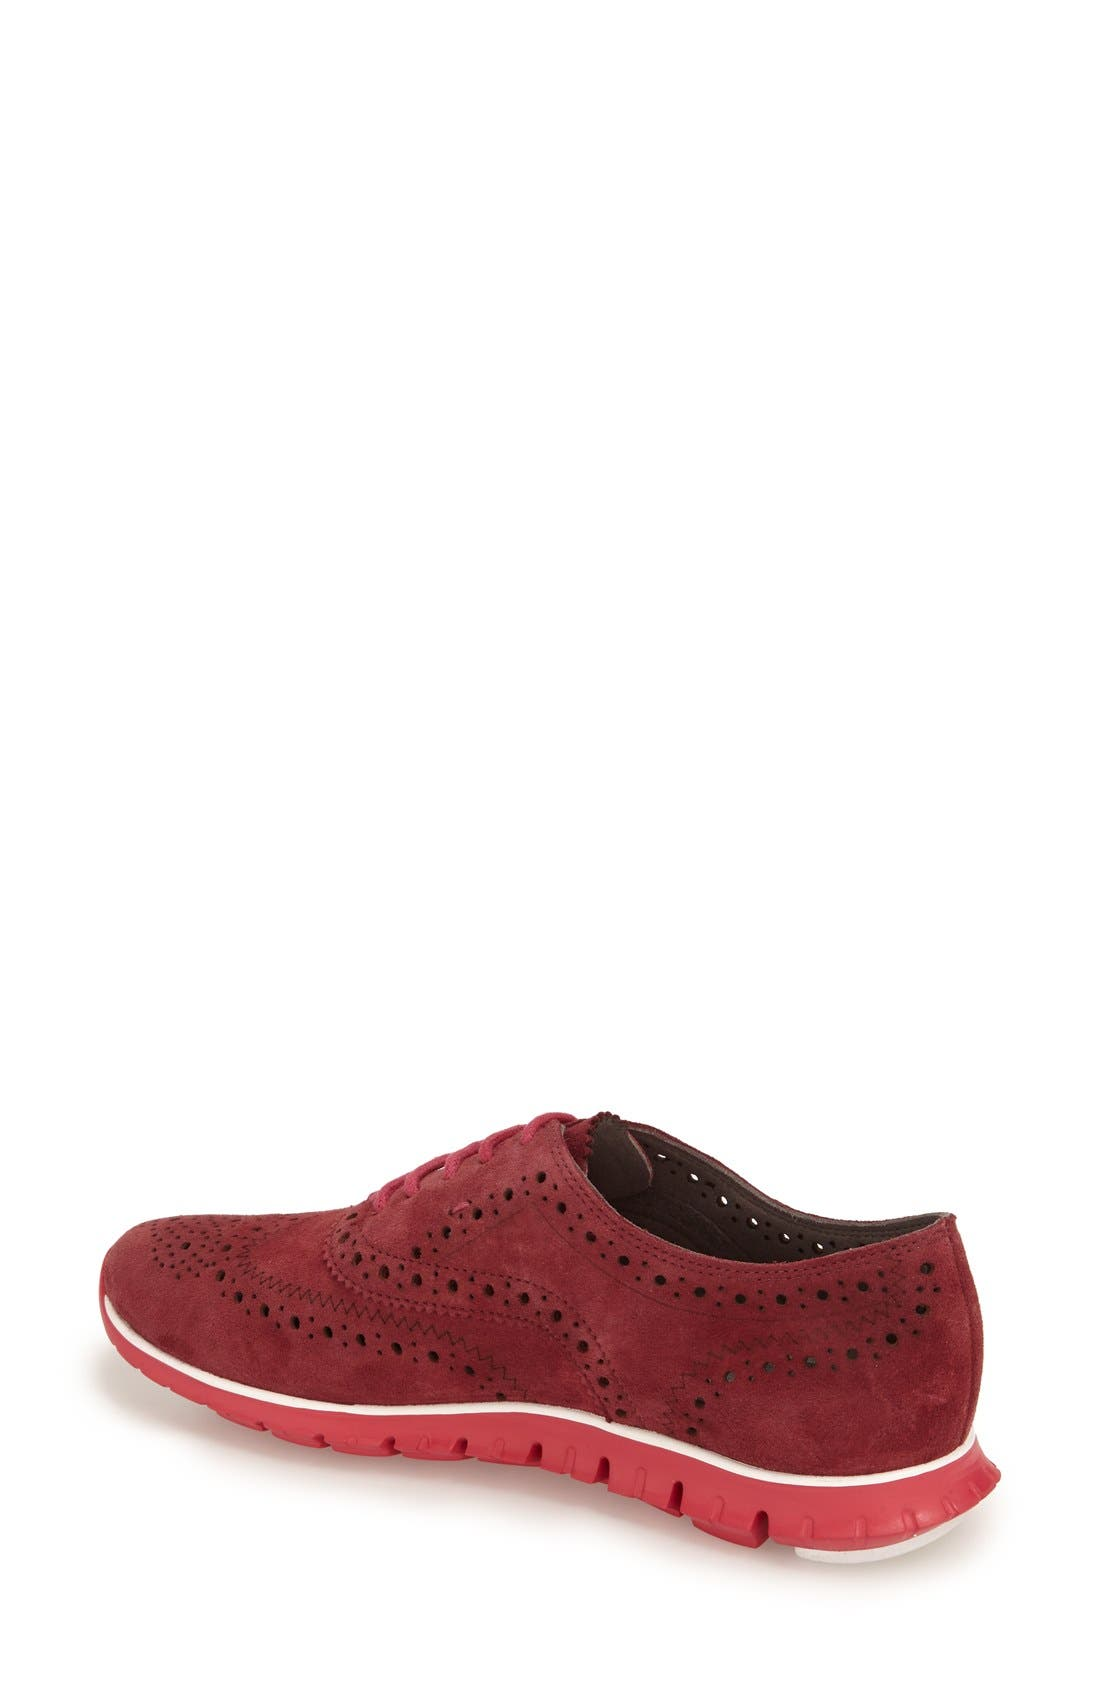 'ZeroGrand' Perforated Wingtip,                             Alternate thumbnail 85, color,